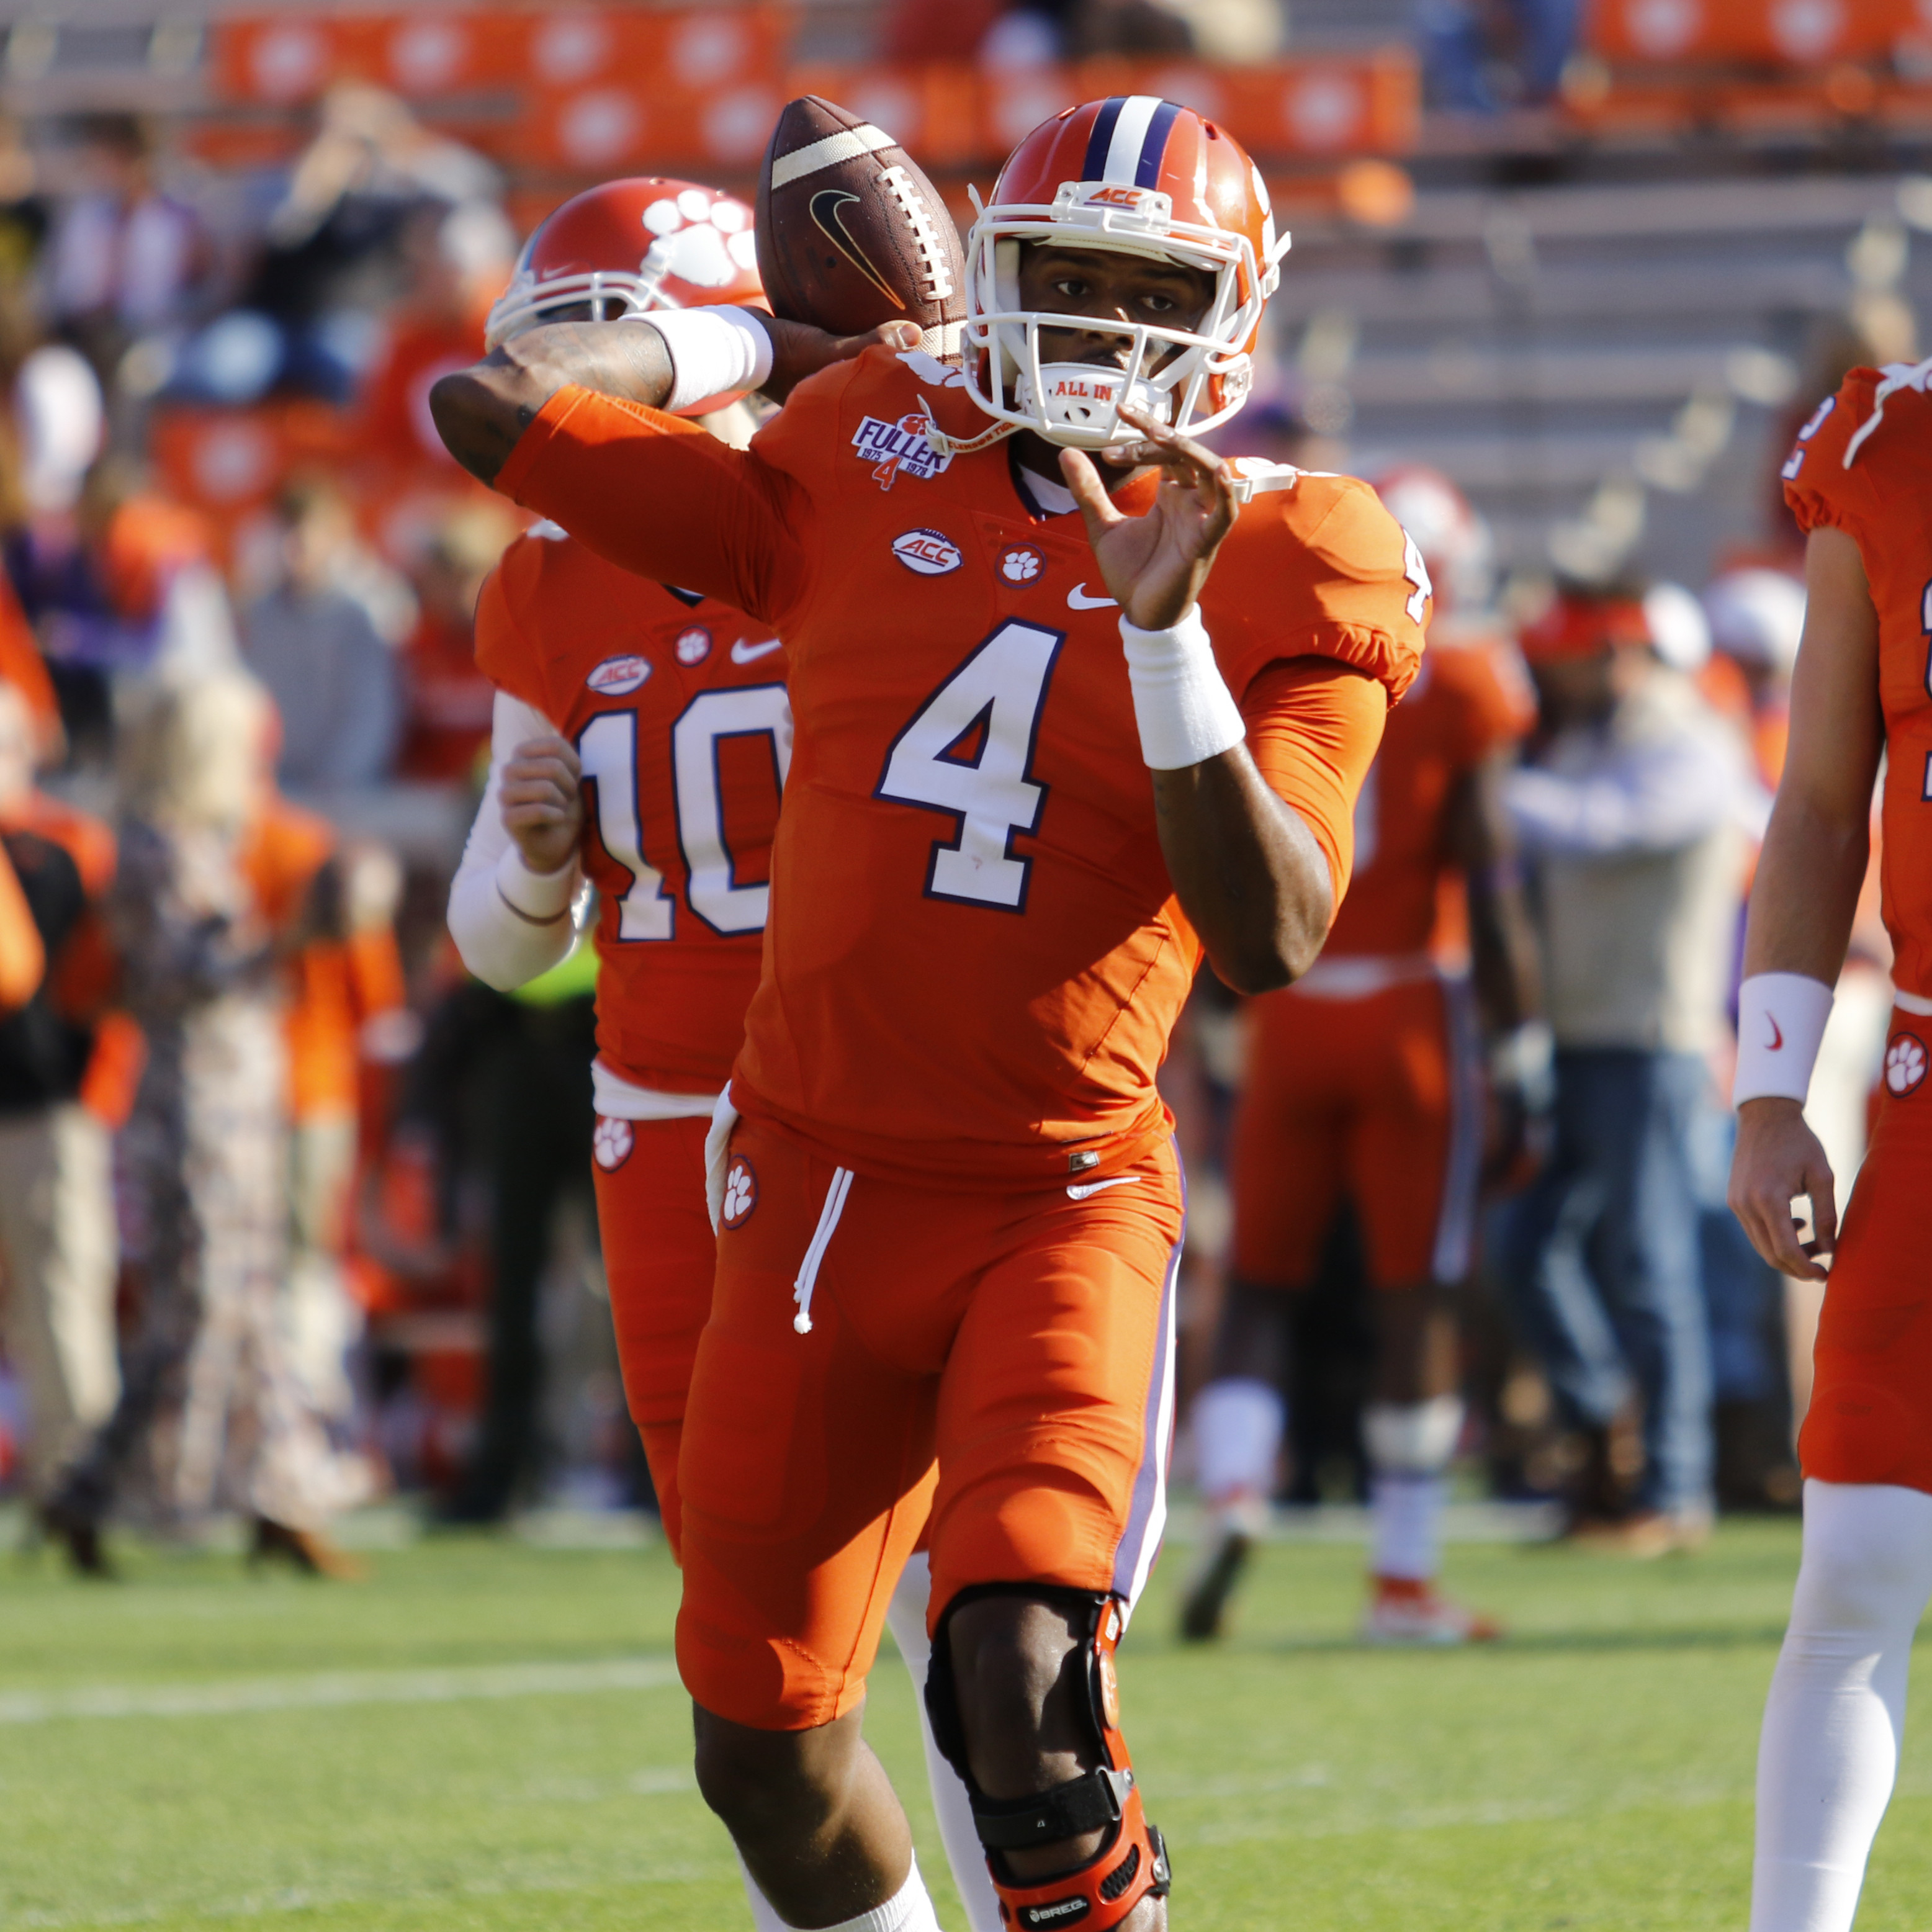 Column: Tigers Faced with Adversity